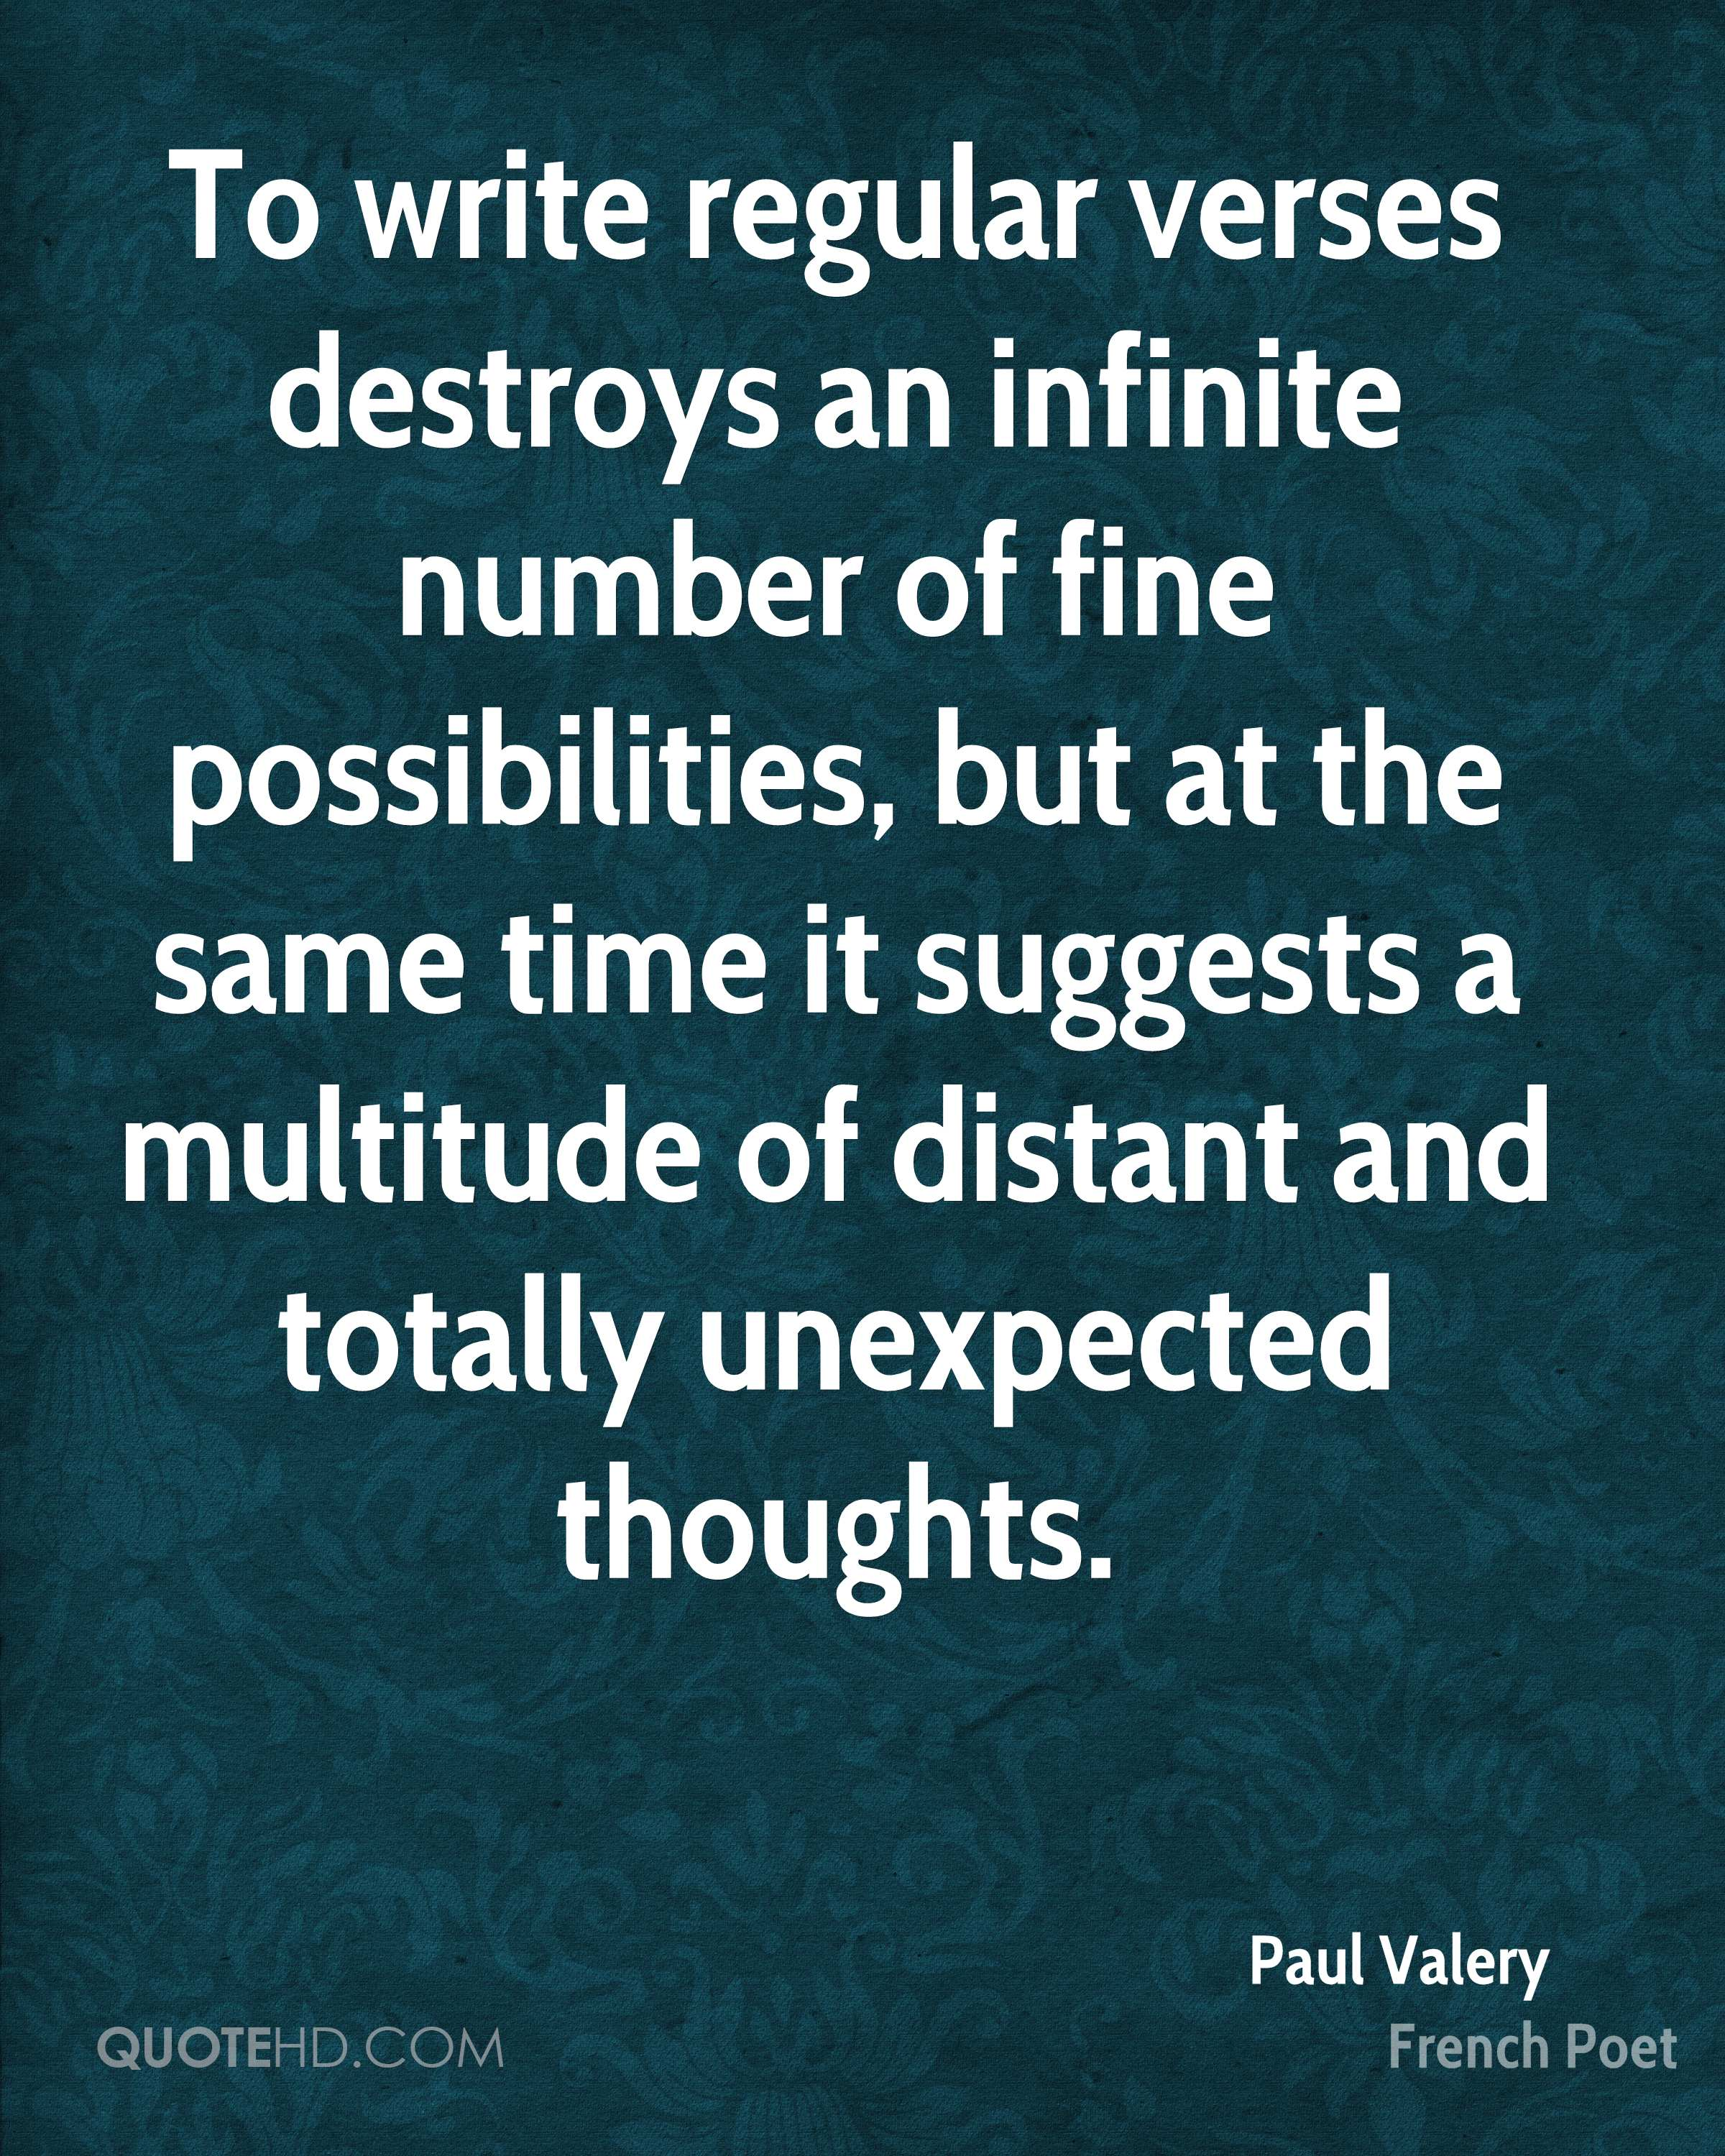 To write regular verses destroys an infinite number of fine possibilities, but at the same time it suggests a multitude of distant and totally unexpected thoughts.